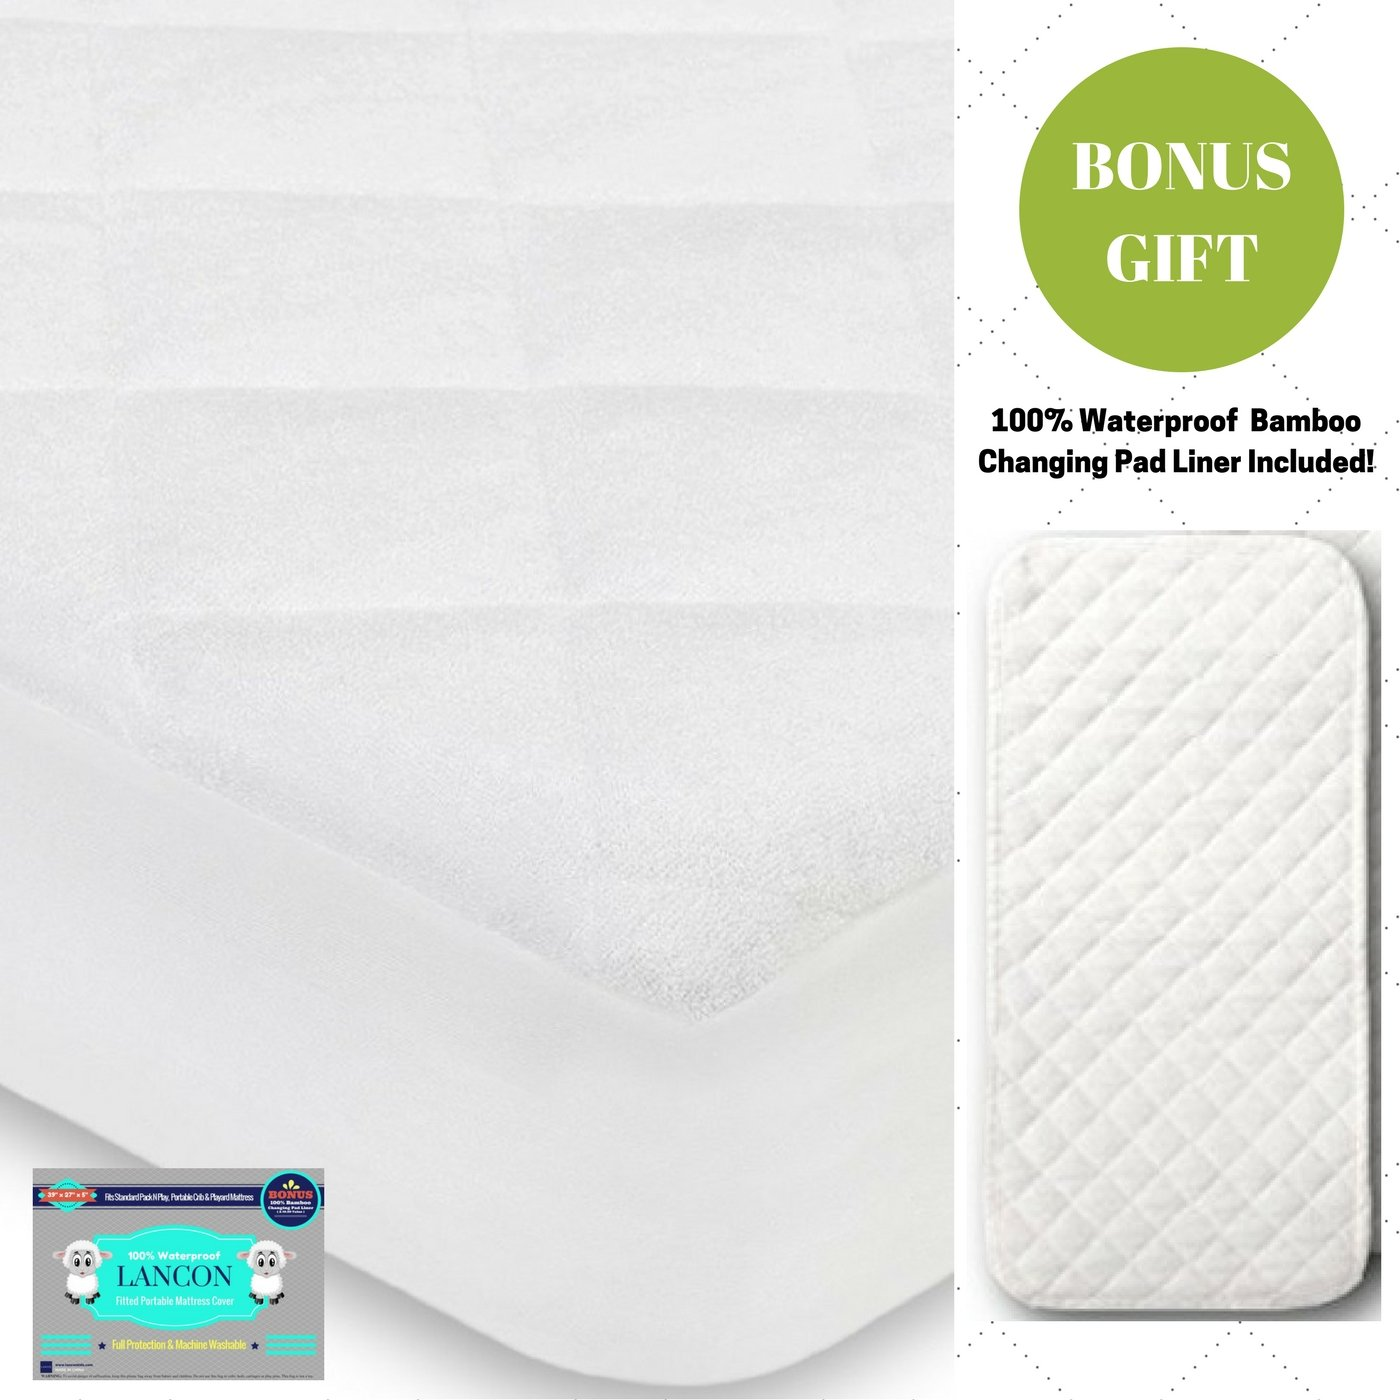 Organic Crib Mattress Pad Cover + BONUS Changing Pad Liner Included! – Waterproof, Hypoallergenic, Fitted with Ultra Soft Bamboo Quilted Top - Fits ALL Standard Crib Mattresses FamiMarket